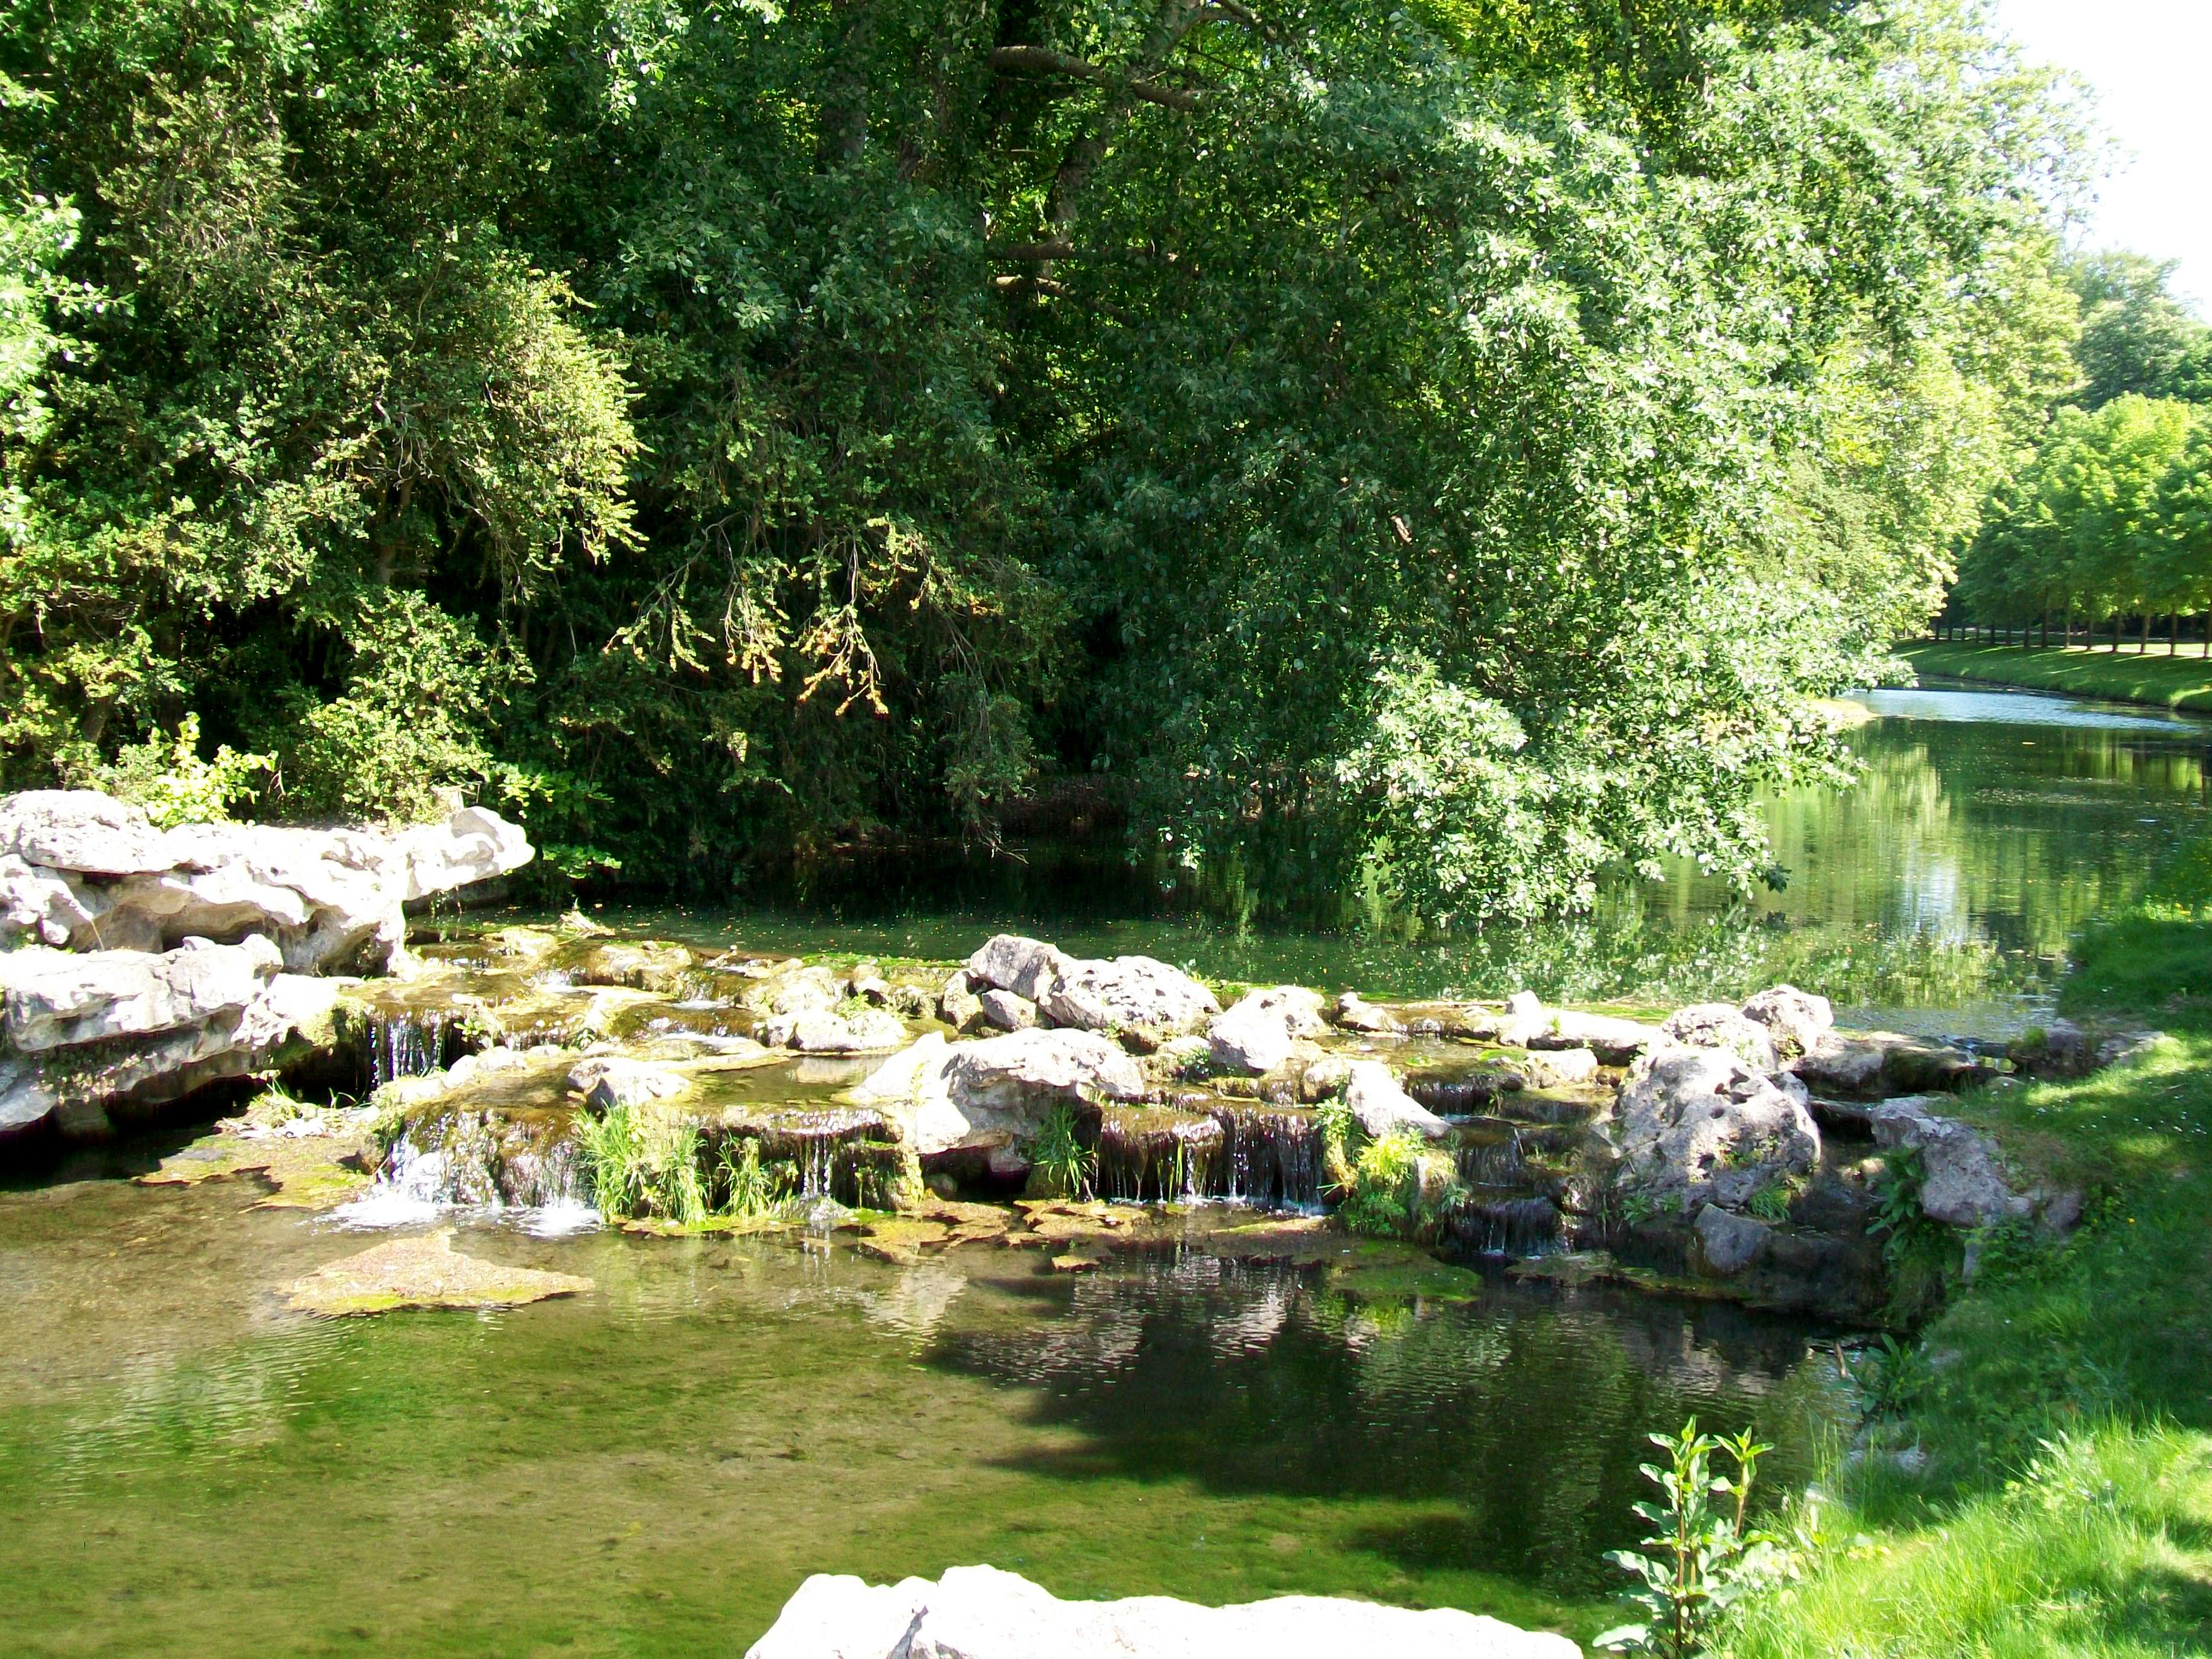 File Ch¢teau de Chantilly jardin anglo chinois canal des